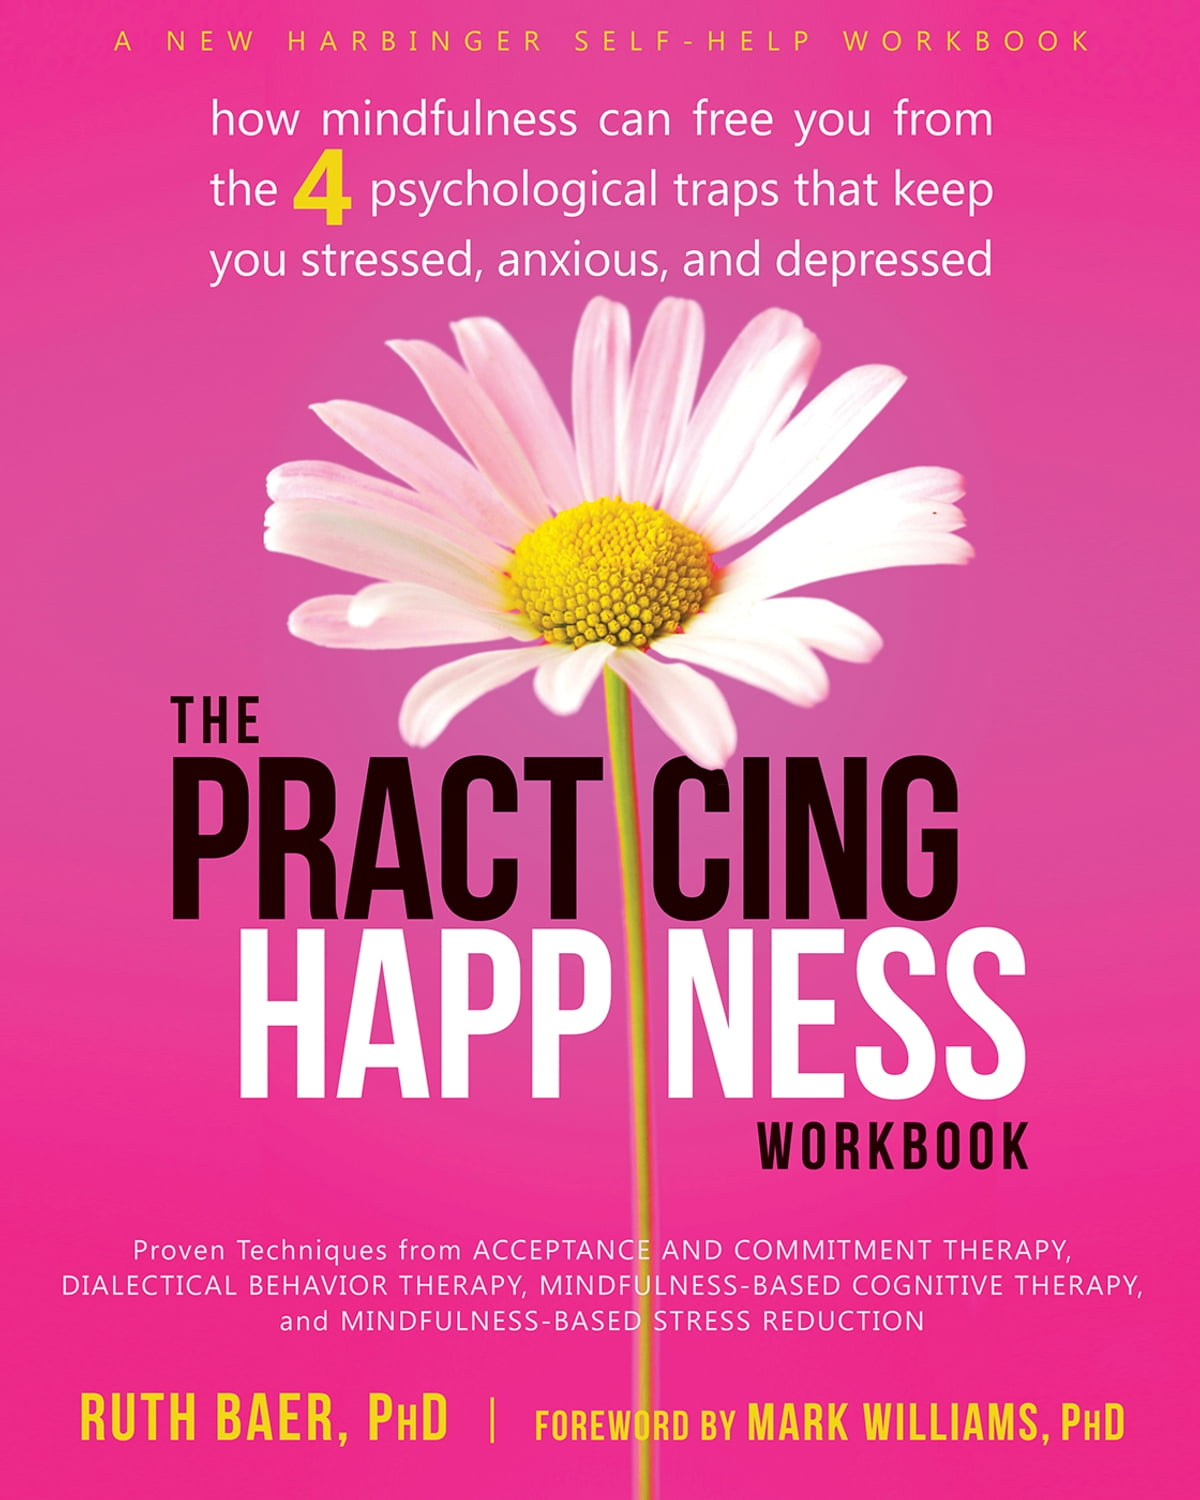 Workbooks dialectical behavior therapy skills workbook : The Practicing Happiness Workbook eBook by Ruth Baer, PhD ...